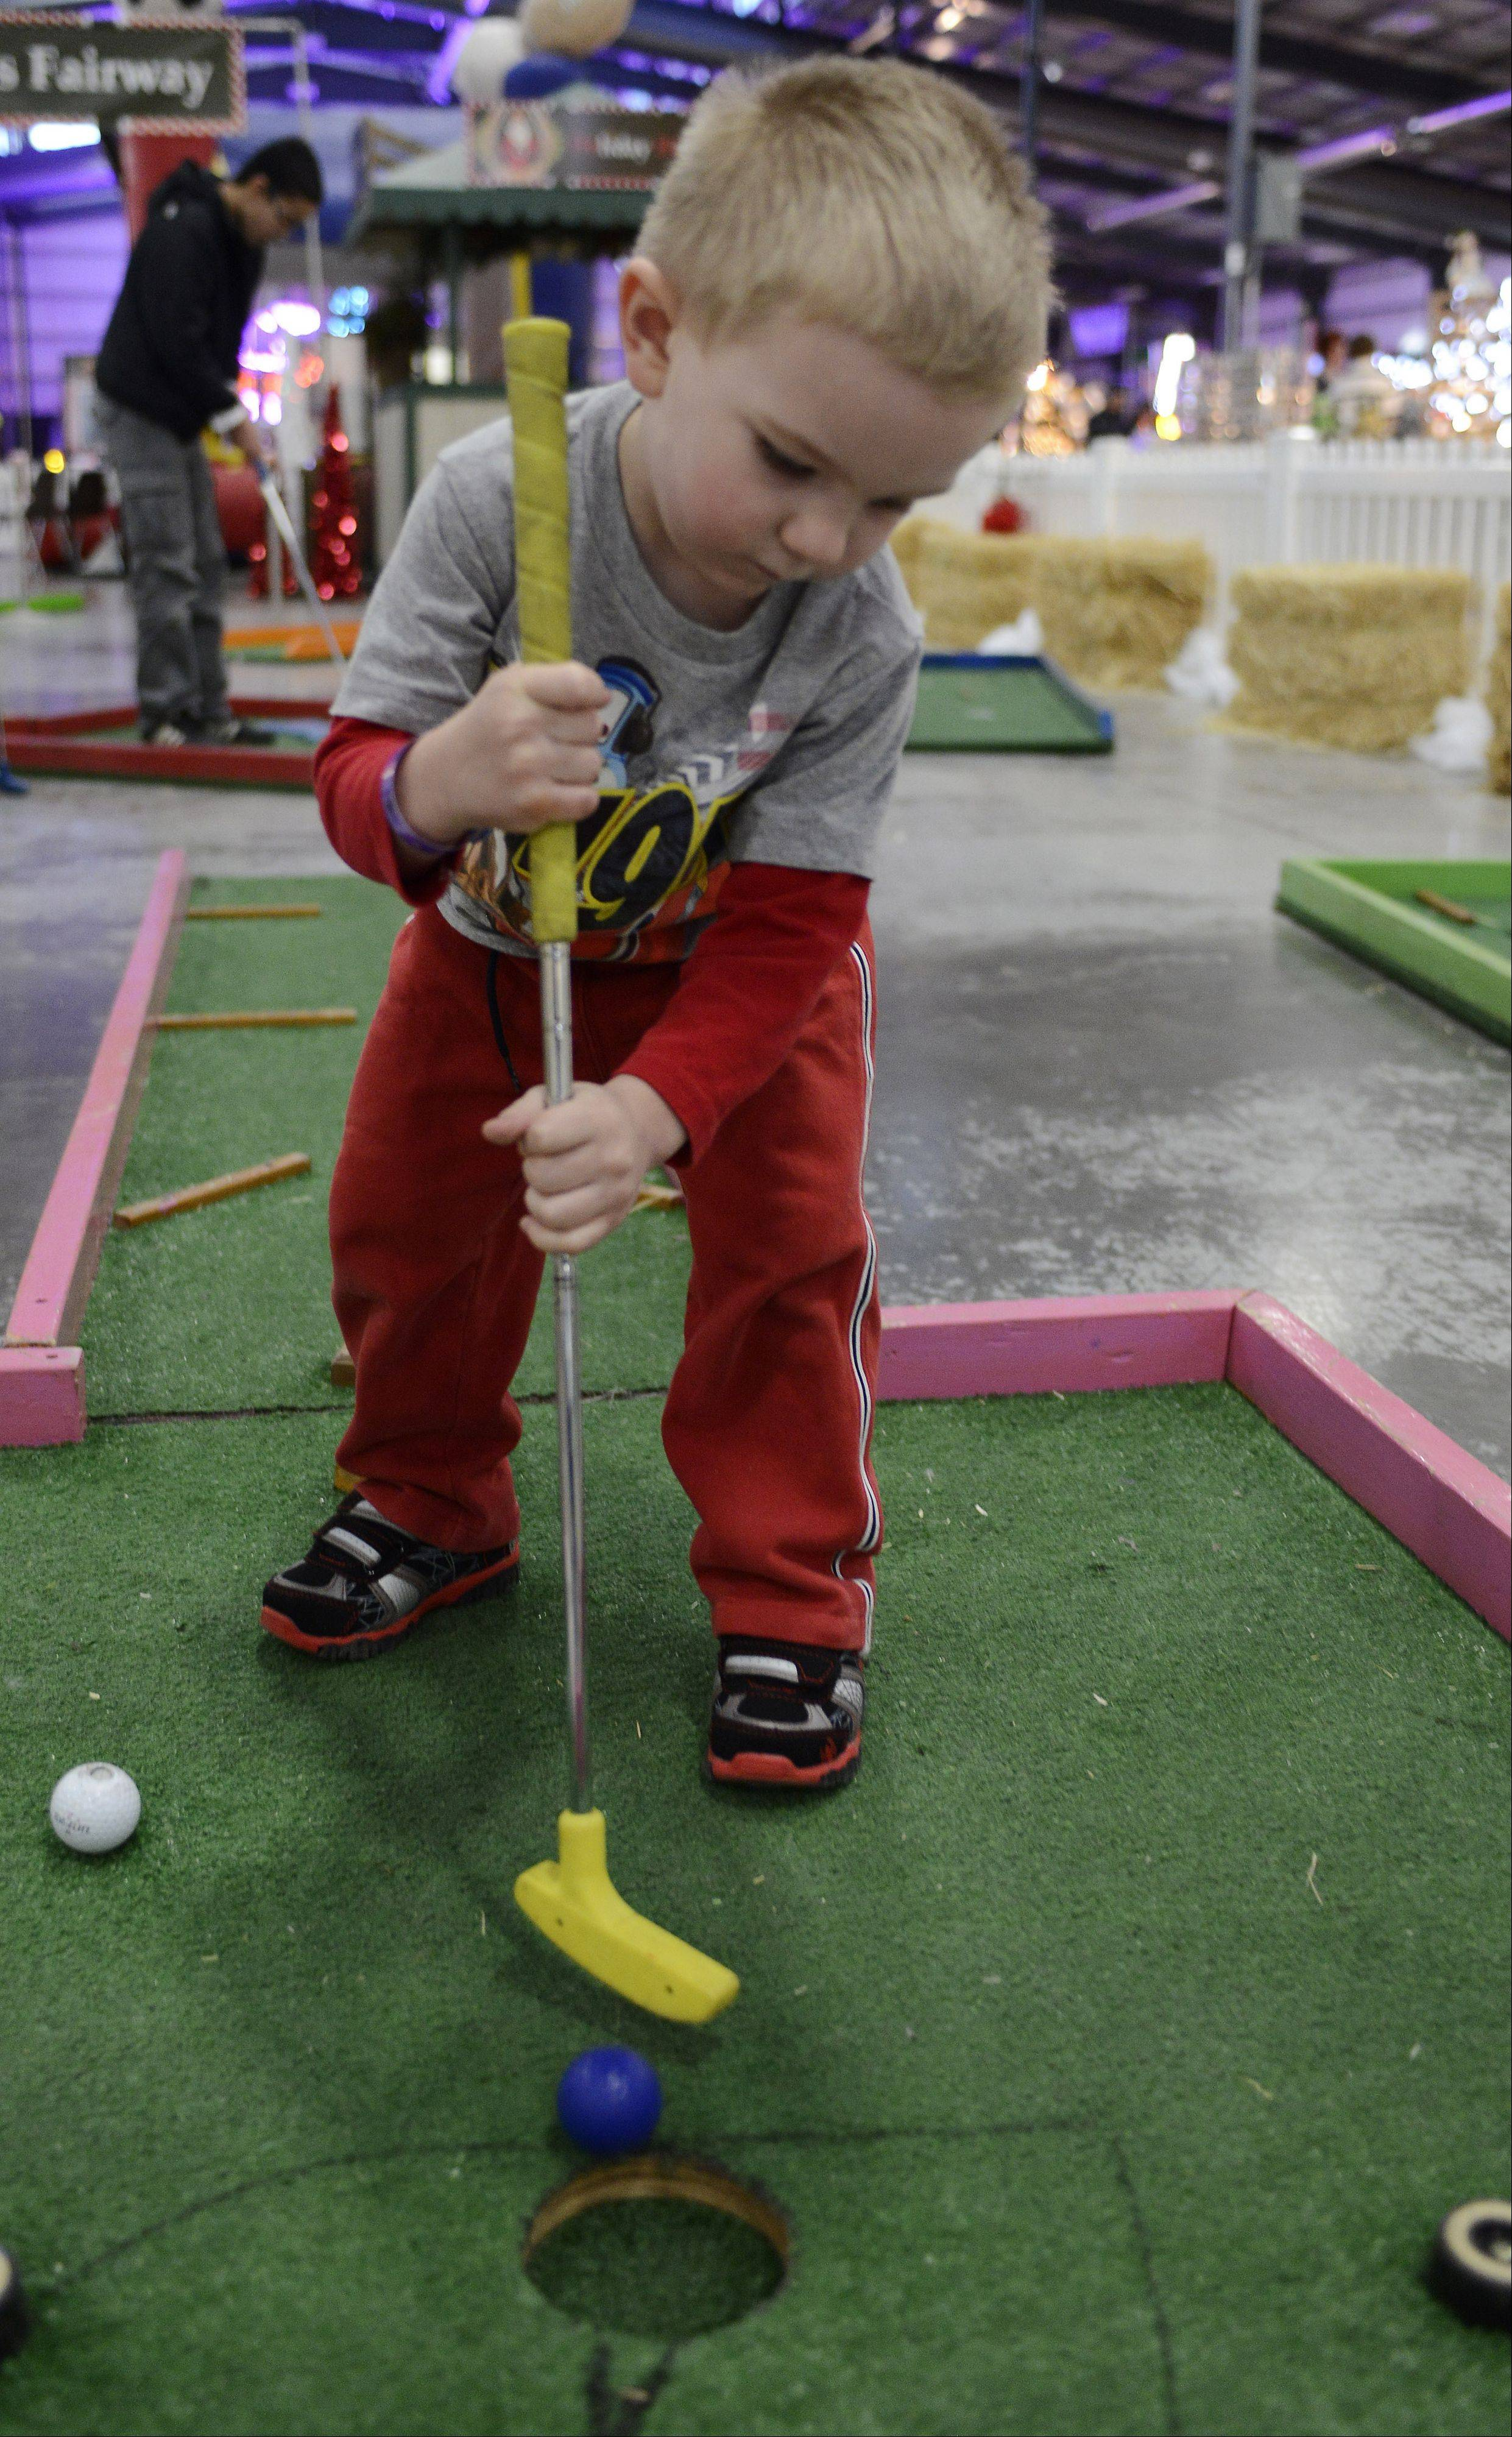 Kaiden Kohler, 3, of Rolling Meadows, plays miniature golf during the Holiday Hoedown at the Lake County Fairgrounds Saturday.